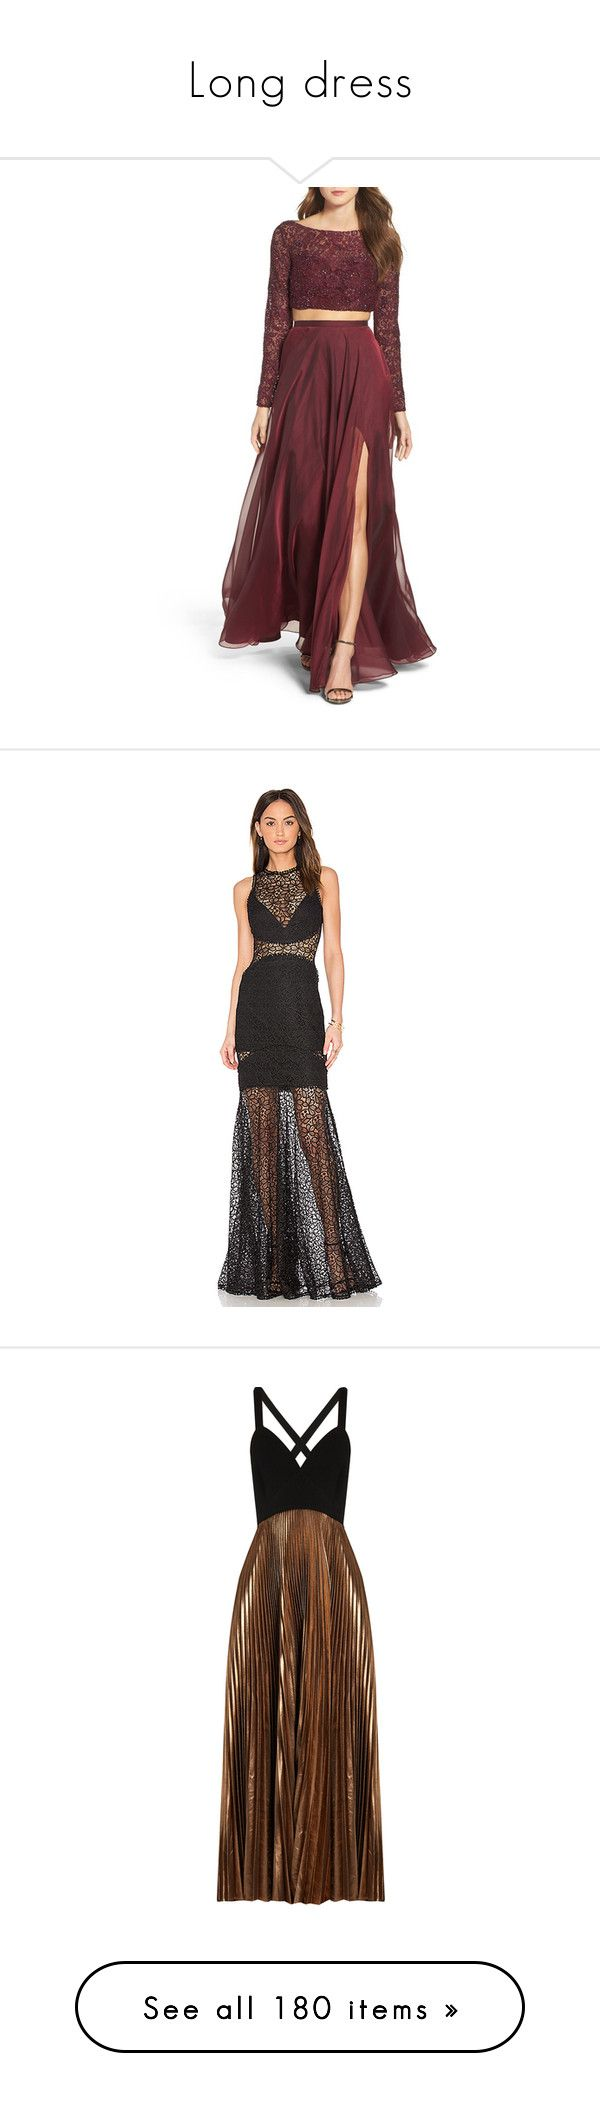 """""""Long dress"""" by opaqueaura ❤ liked on Polyvore featuring dresses, gowns, garnet, red lace ball gown, red lace gown, red lace dress, red ball gown, lace gown, crochet evening dresses and lace ball gown"""